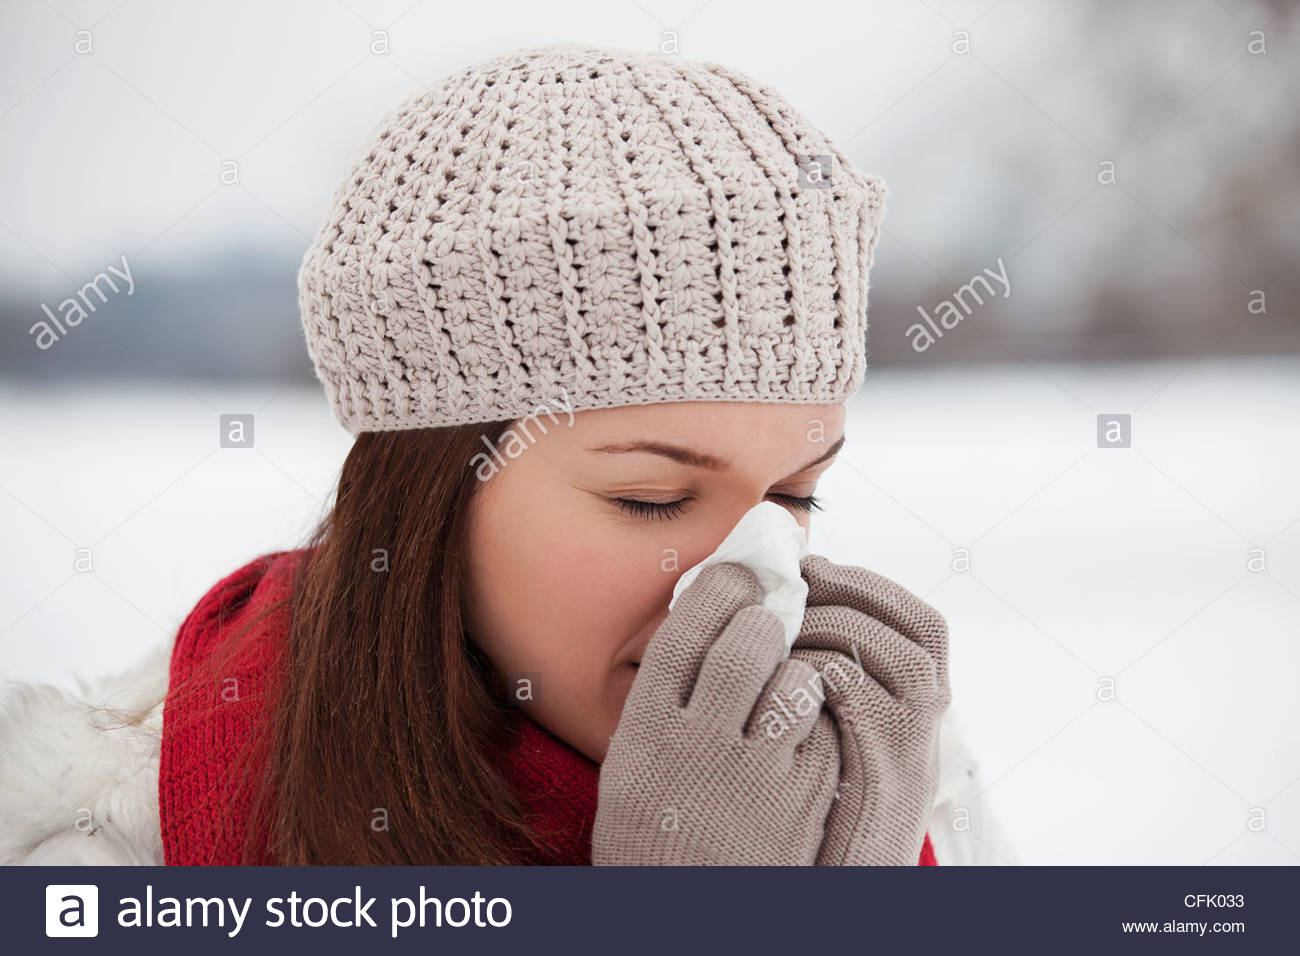 A young woman standing in the snow, blowing her nose - Stock Image